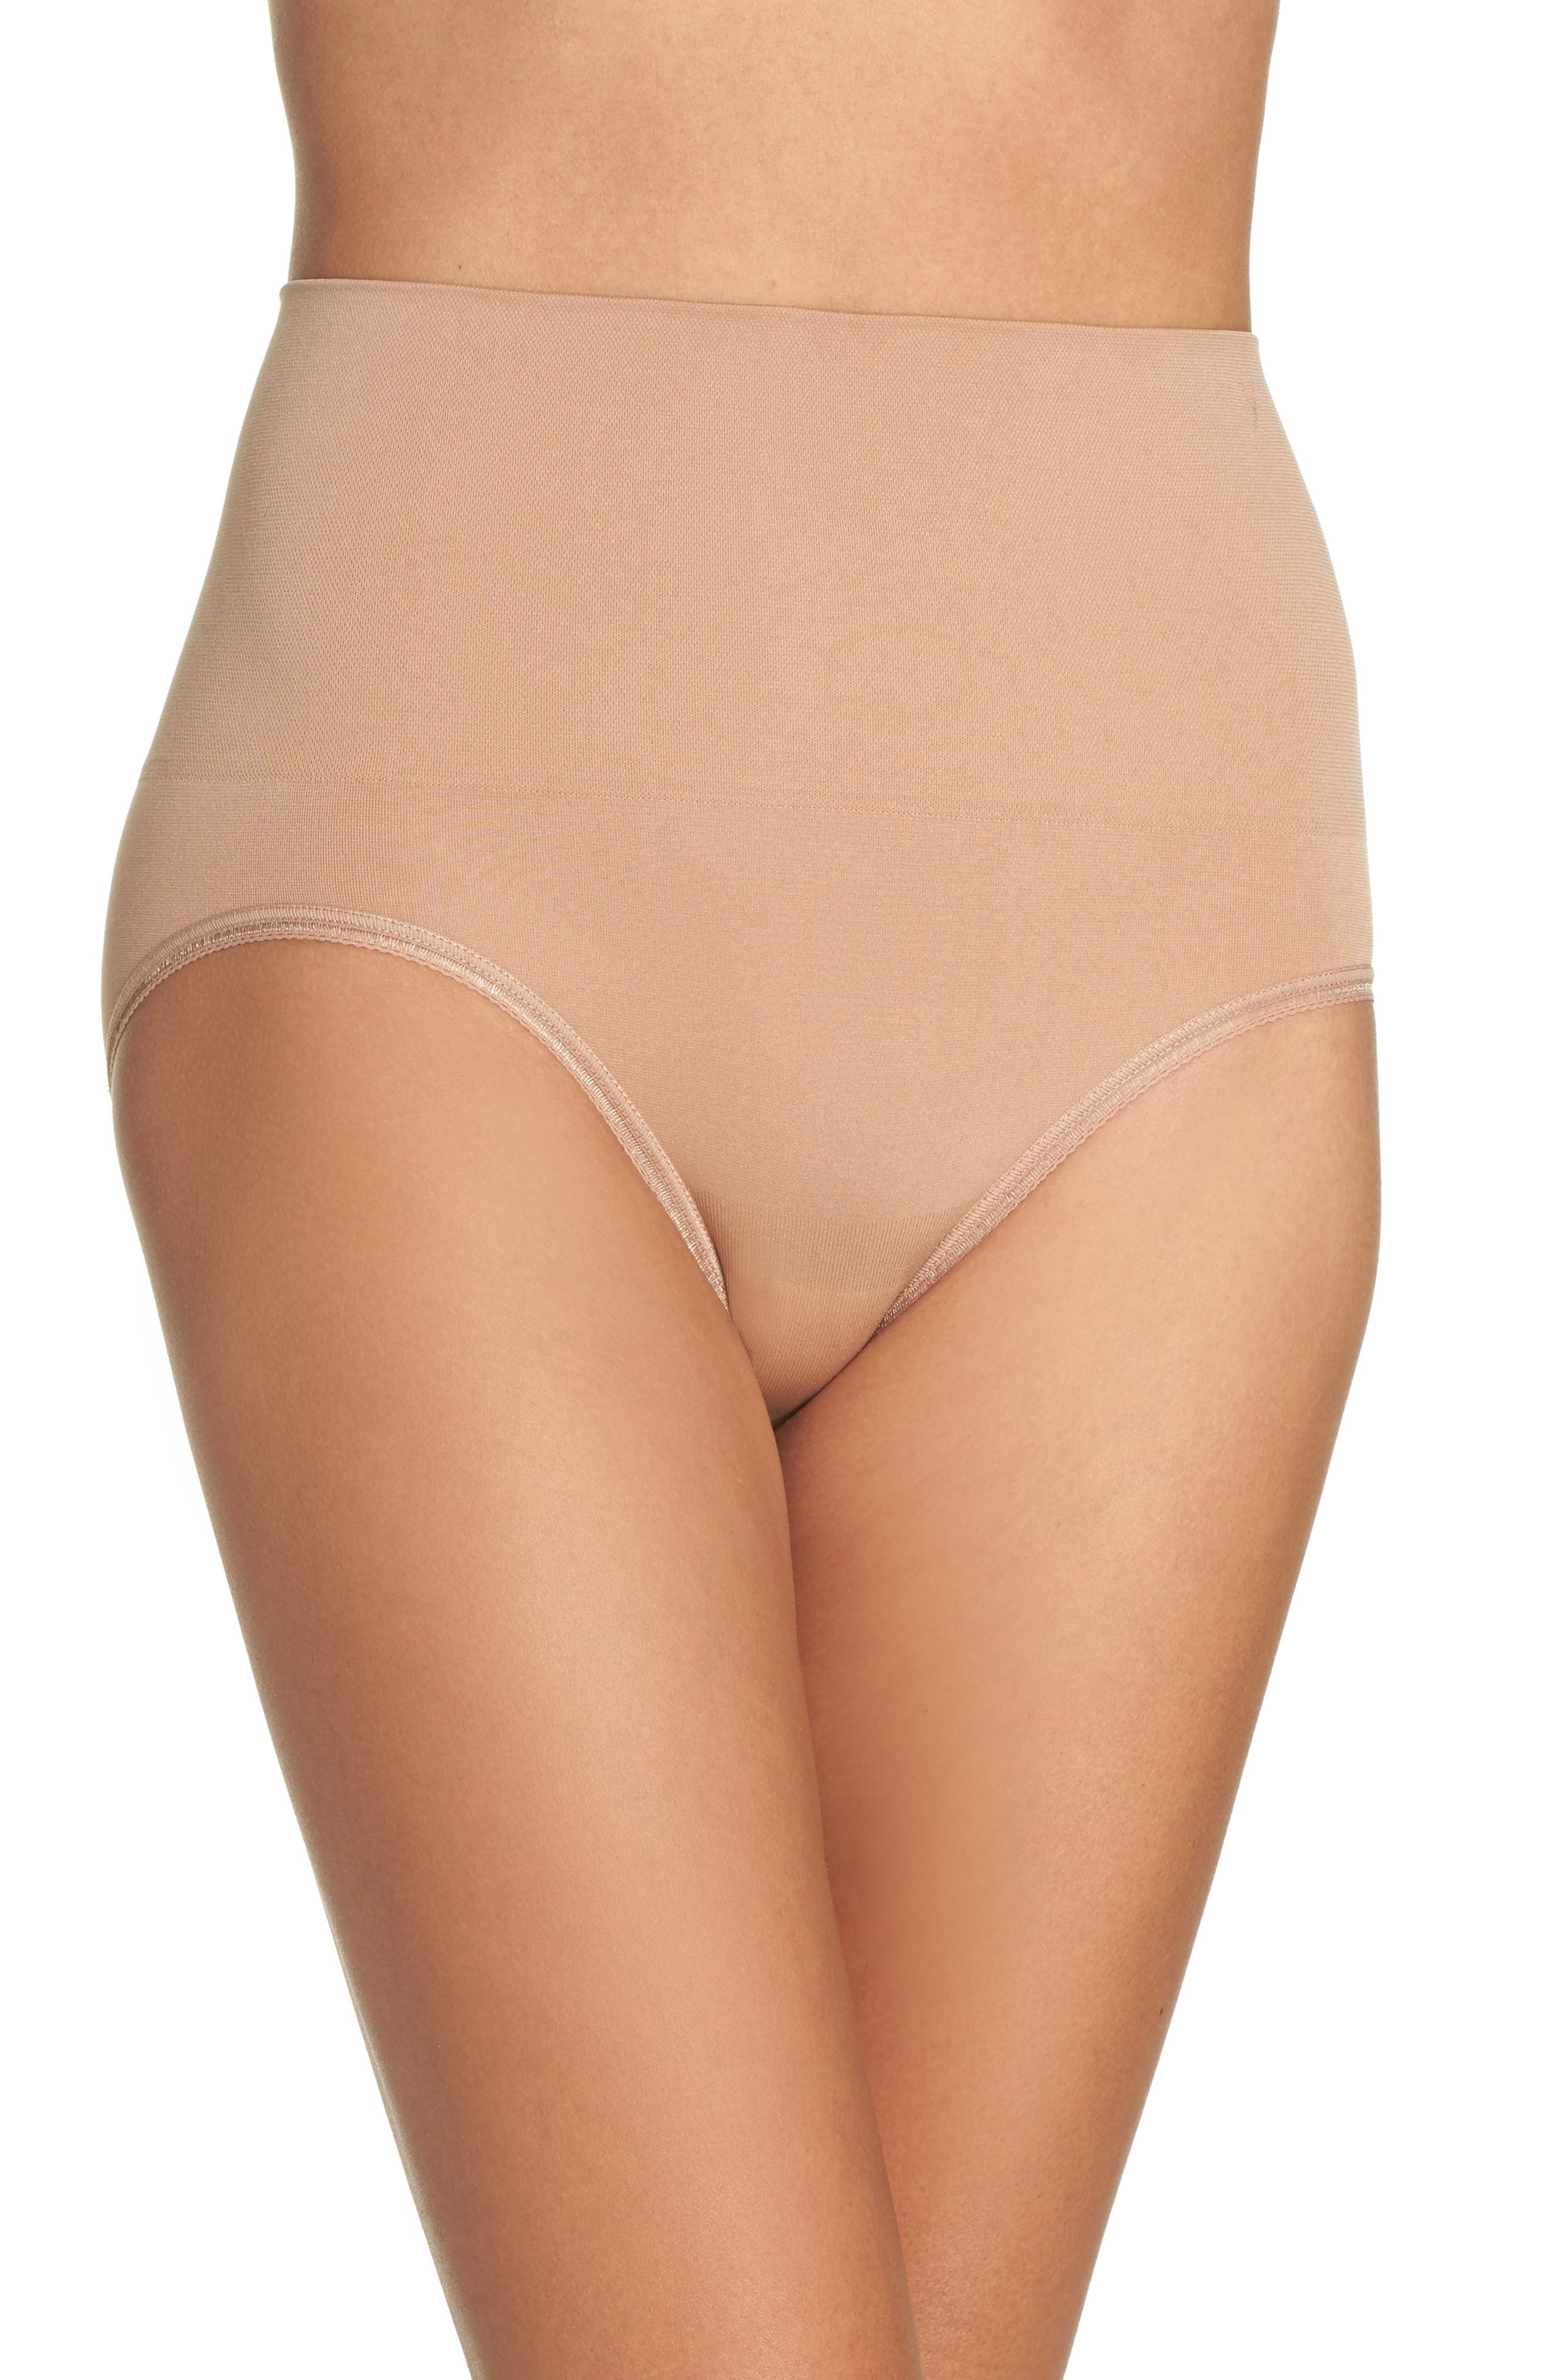 Ultralight Seamless Shaping Briefs,                             Main thumbnail 1, color,                             Almond